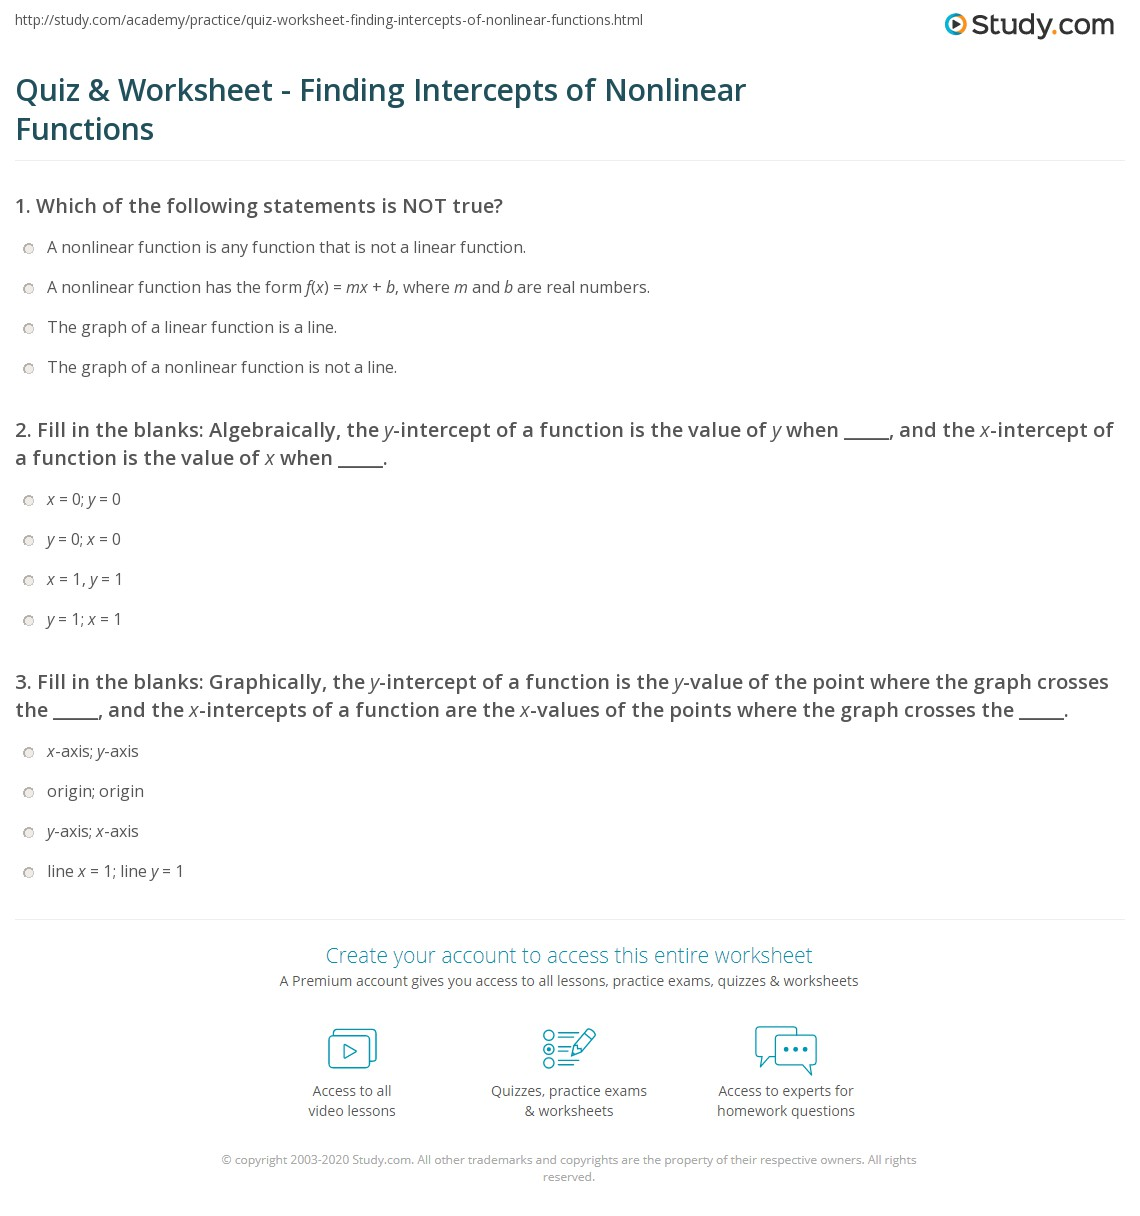 worksheet Finding X And Y Intercepts Worksheet quiz worksheet finding intercepts of nonlinear functions study com fill in the blanks algebraically y intercept a function is value when and x functi